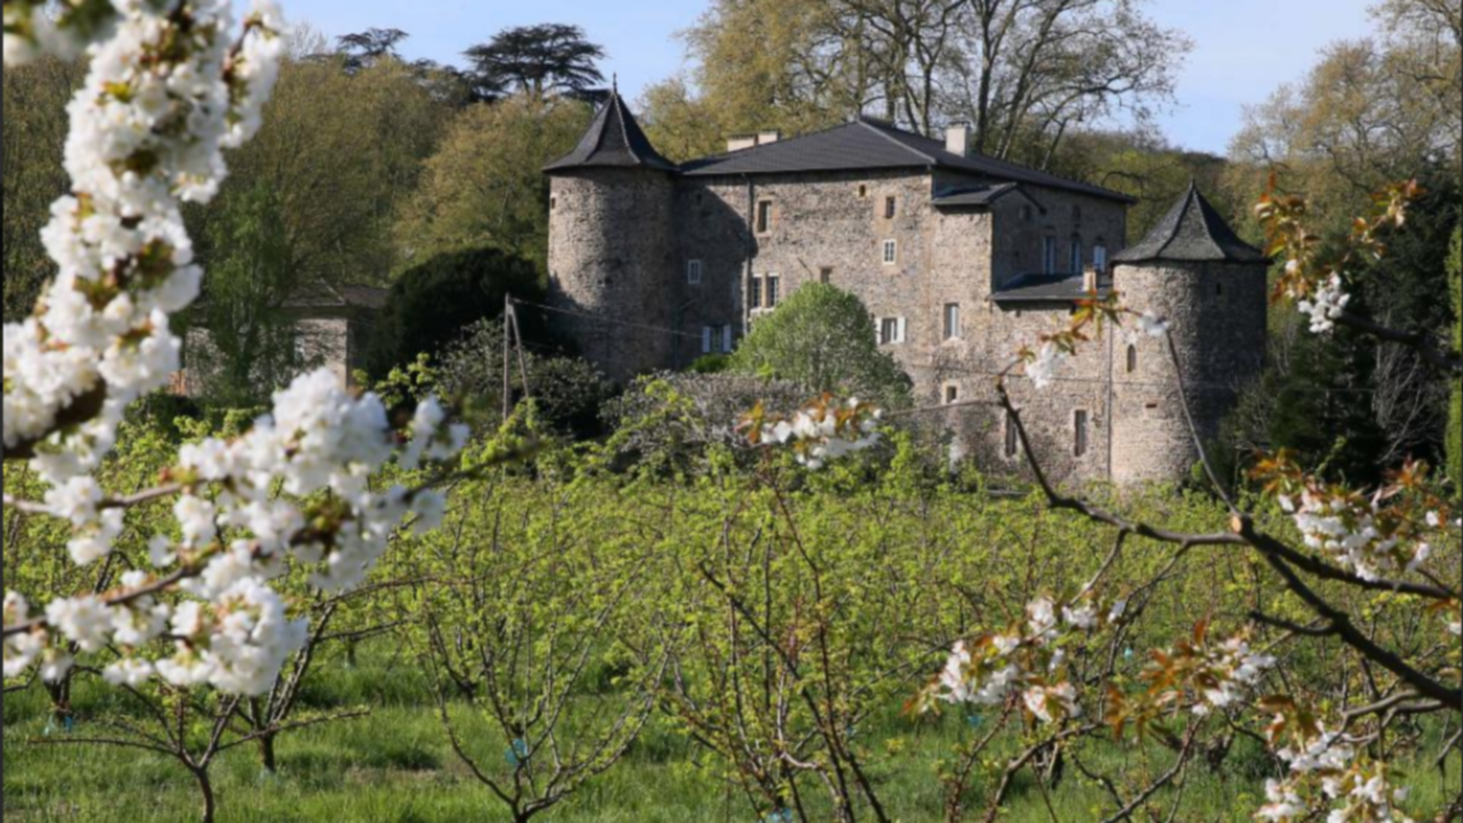 A castle on top of a grass covered field at Domaine La Bonne Etoile.